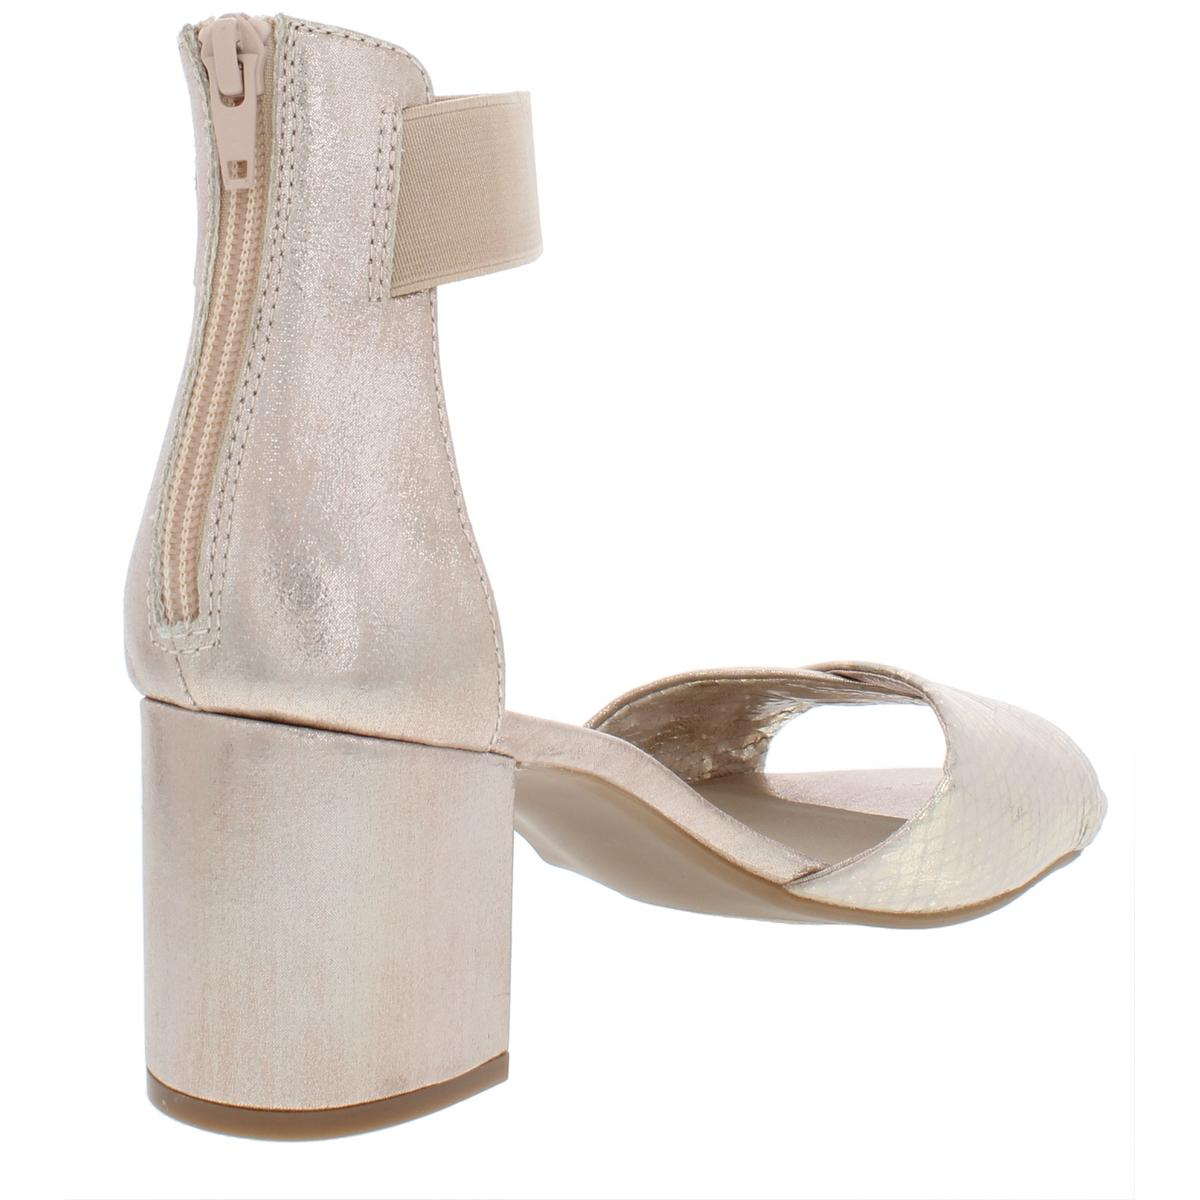 White Mountain Womens Evie Ankle Strap Block Heel Dress Sandals Shoes BHFO 4221